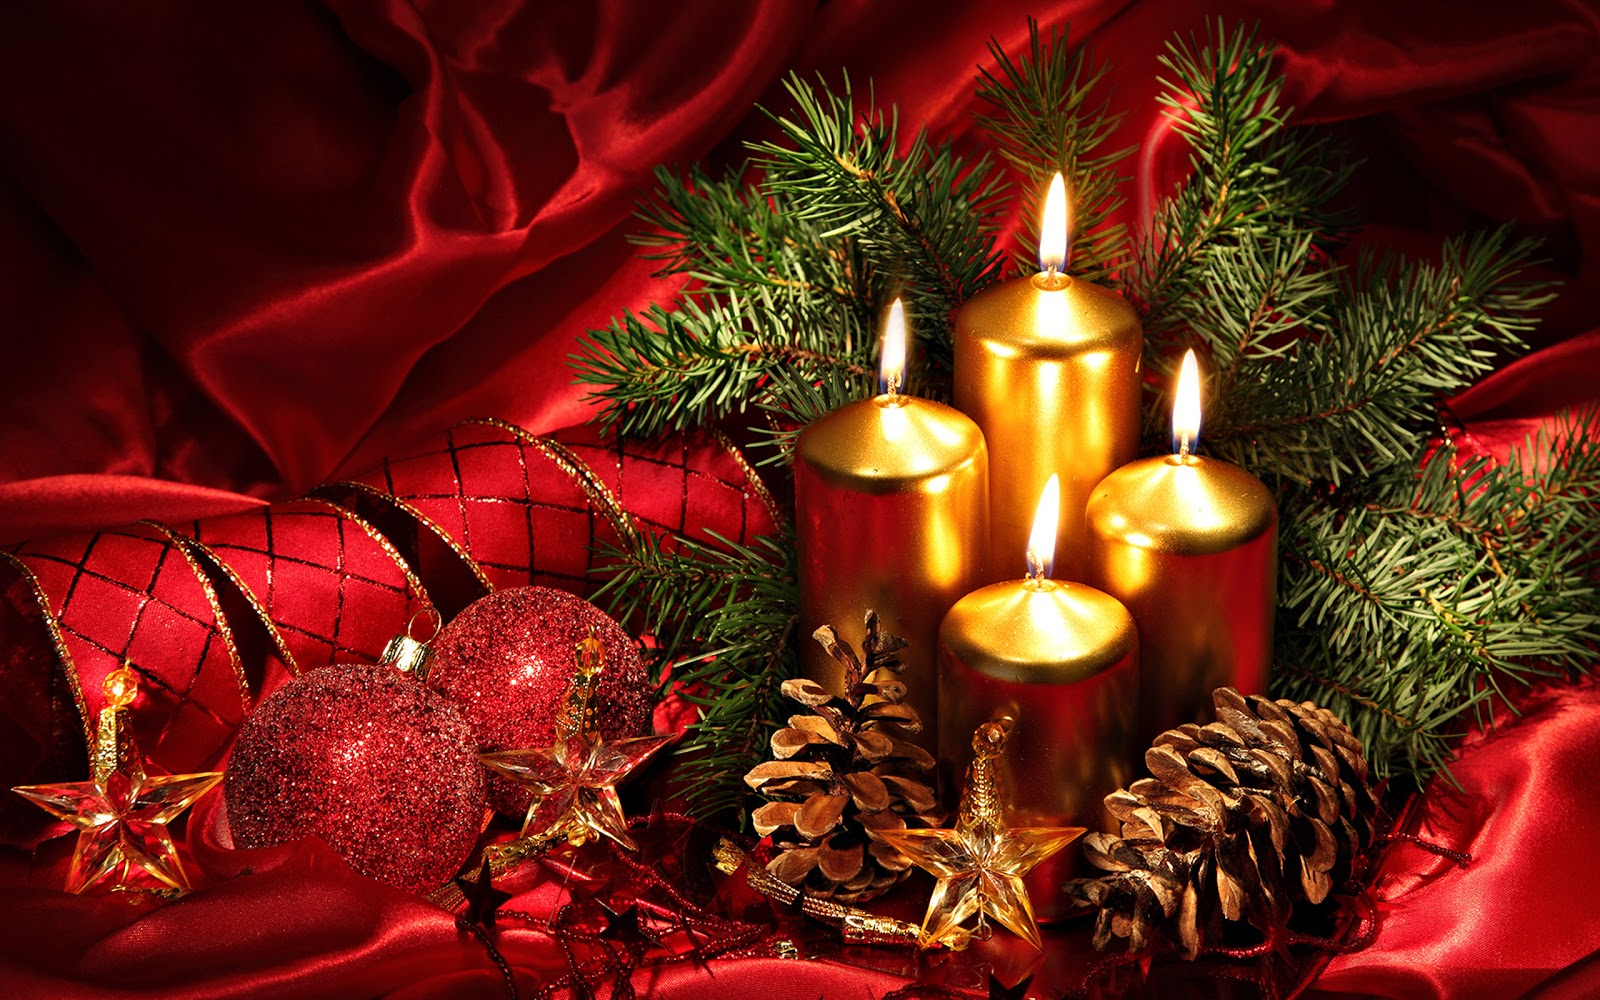 Christmas landscapes wallpaper christmas candles for Christmas landscape images